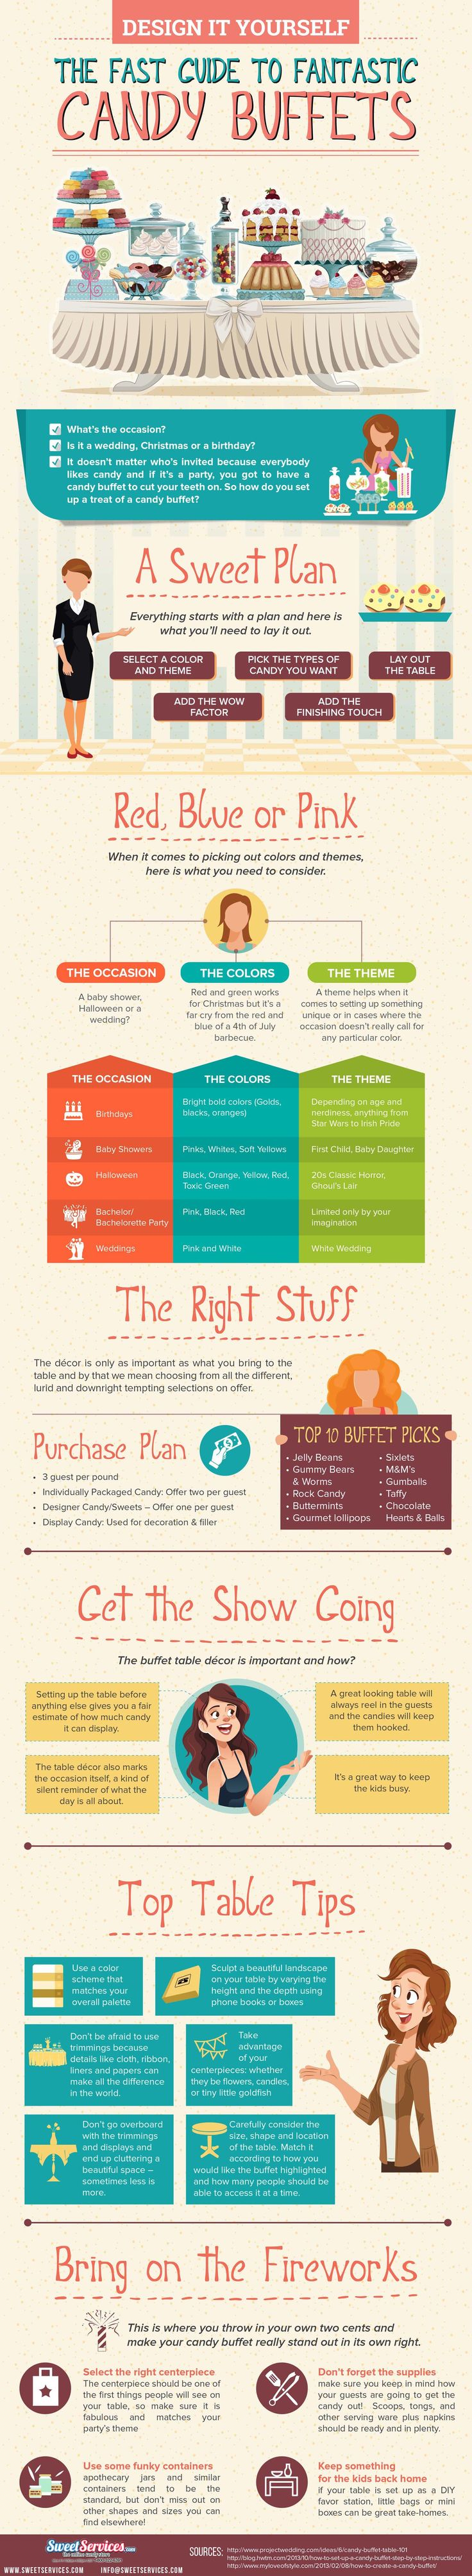 Most people like candy and if you are one of them then you may have considered a candy buffet. This infographic brought to you by the team at Sweet Services online candy store, will show you how to set up your candy buffet the right way.